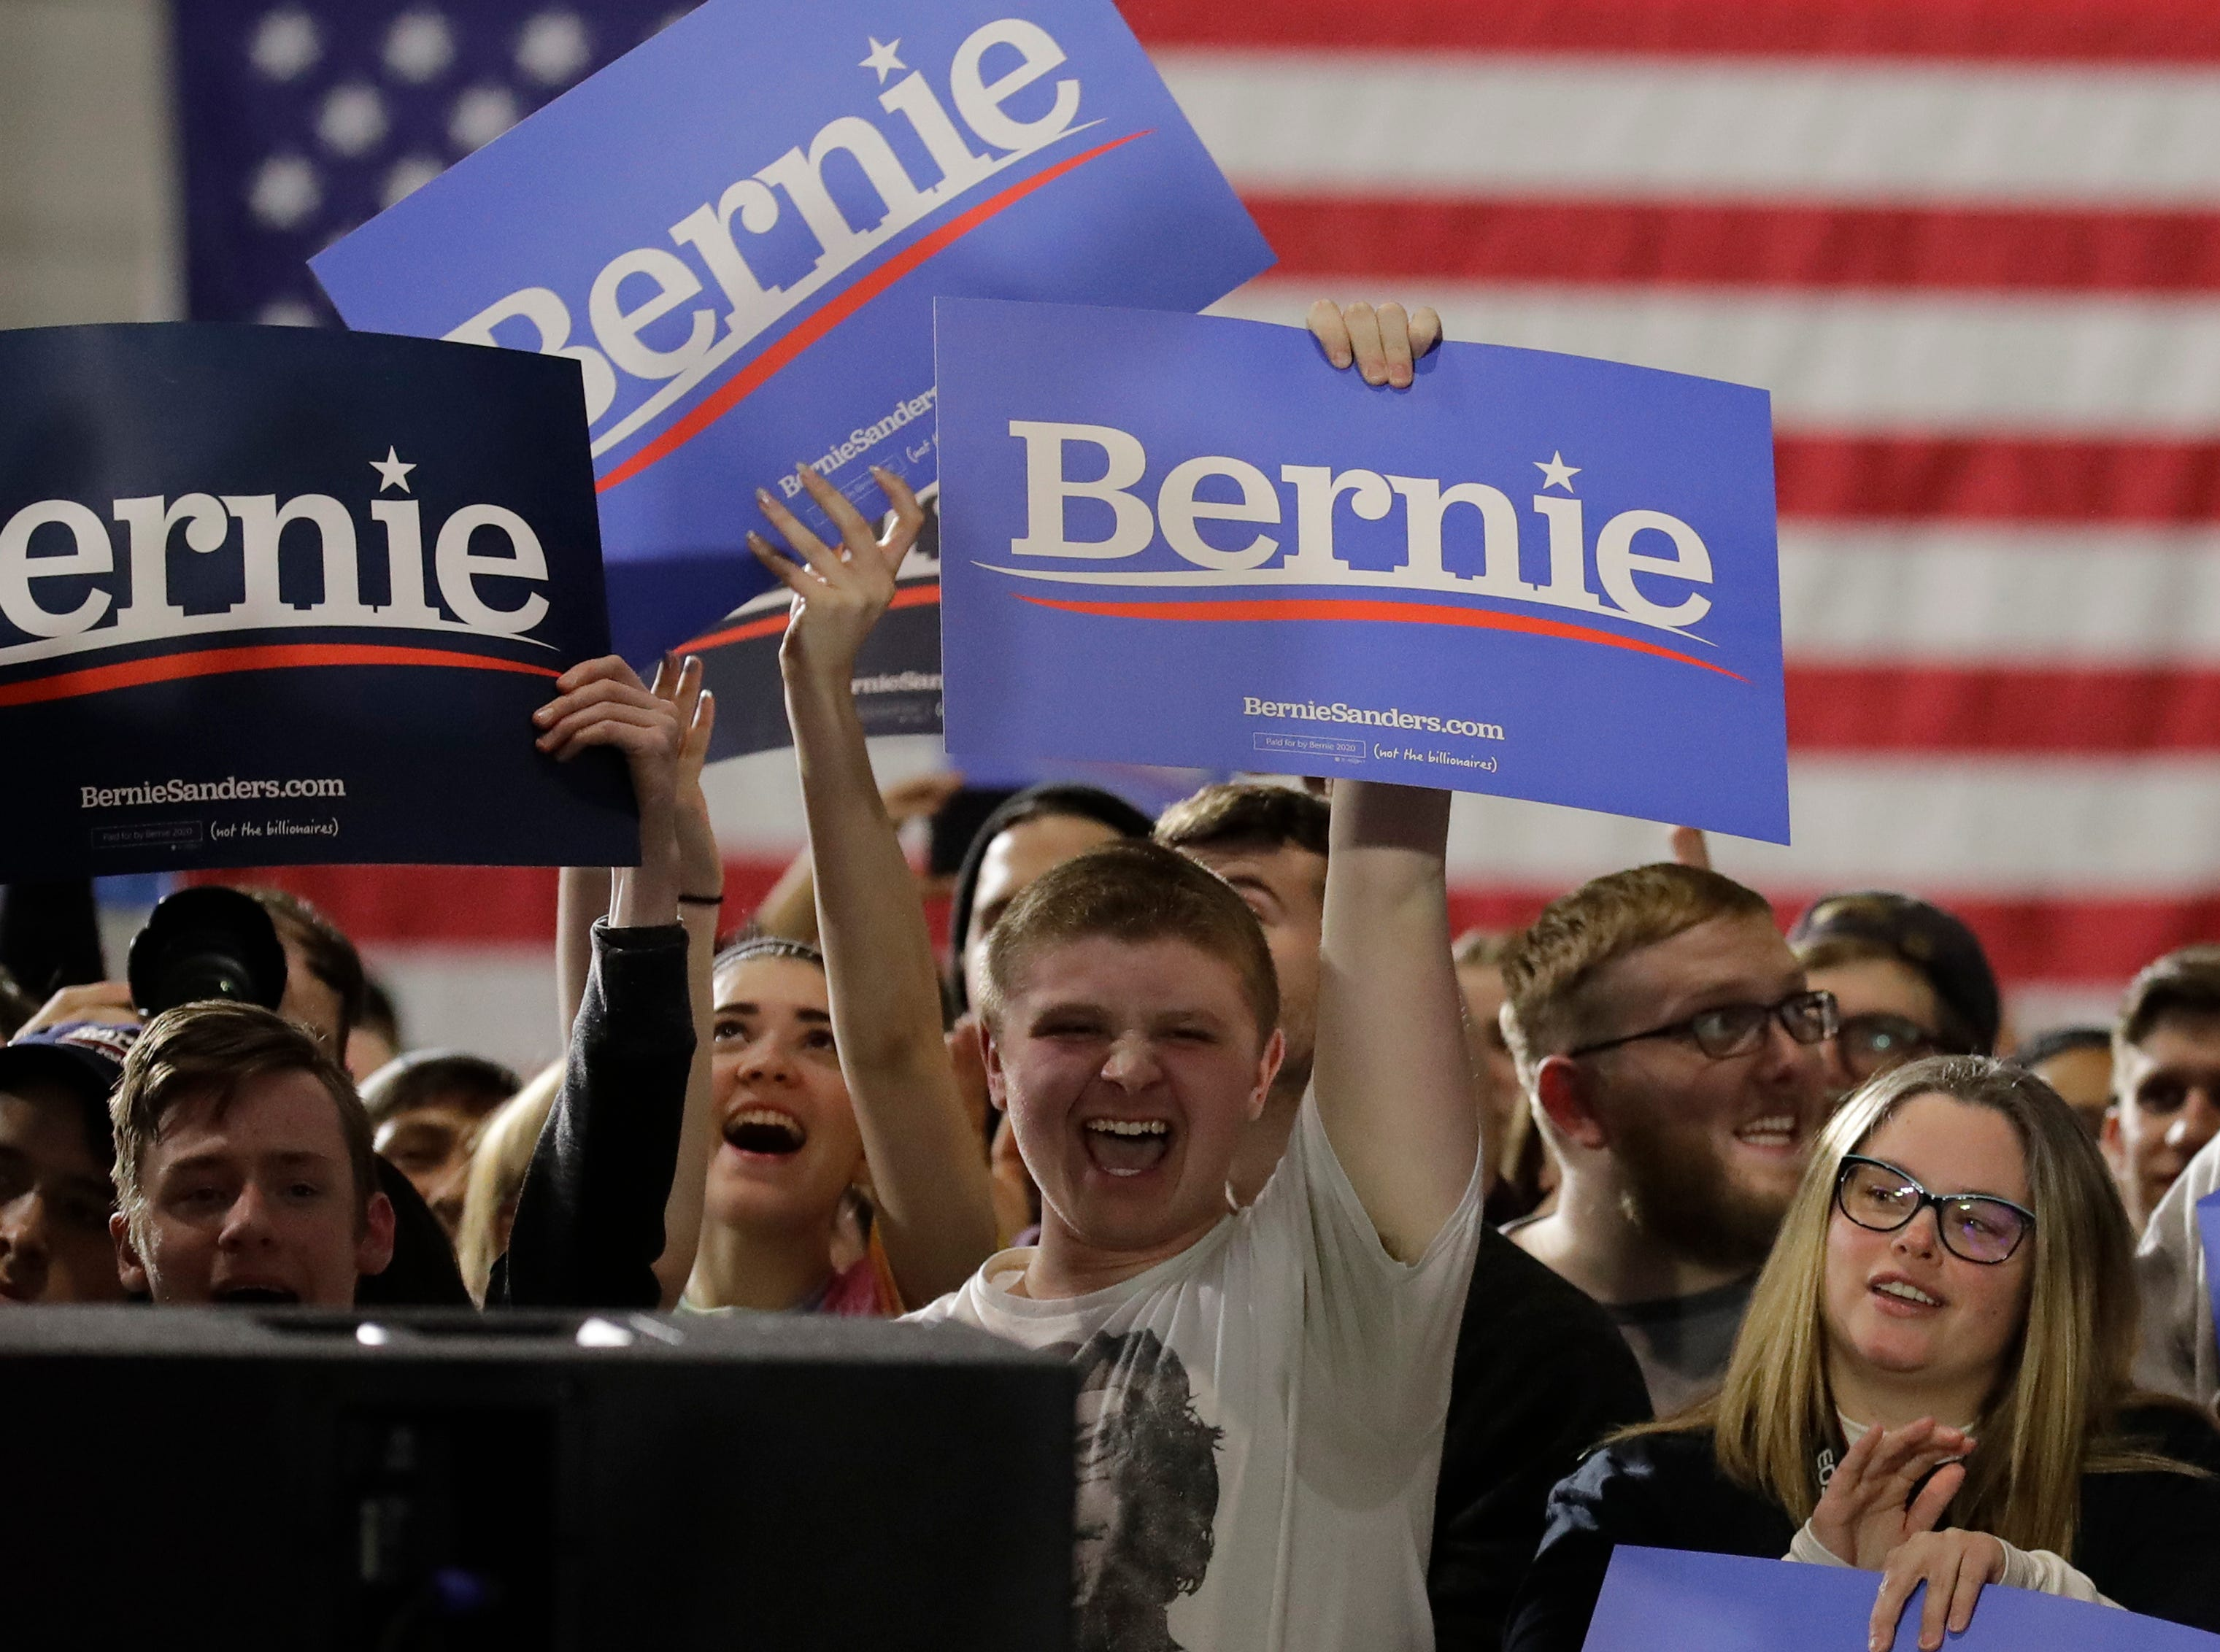 Supporters hold signs as they wait for Sen. Bernie Sanders at 2020 presidential campaign in Chicago, Sunday, March 3, 2019. Over the next several weeks, Sanders will travel to Iowa, New Hampshire, South Carolina, Nevada, and California. He will then return to Burlington, Vermont, for the official launch of his campaign.